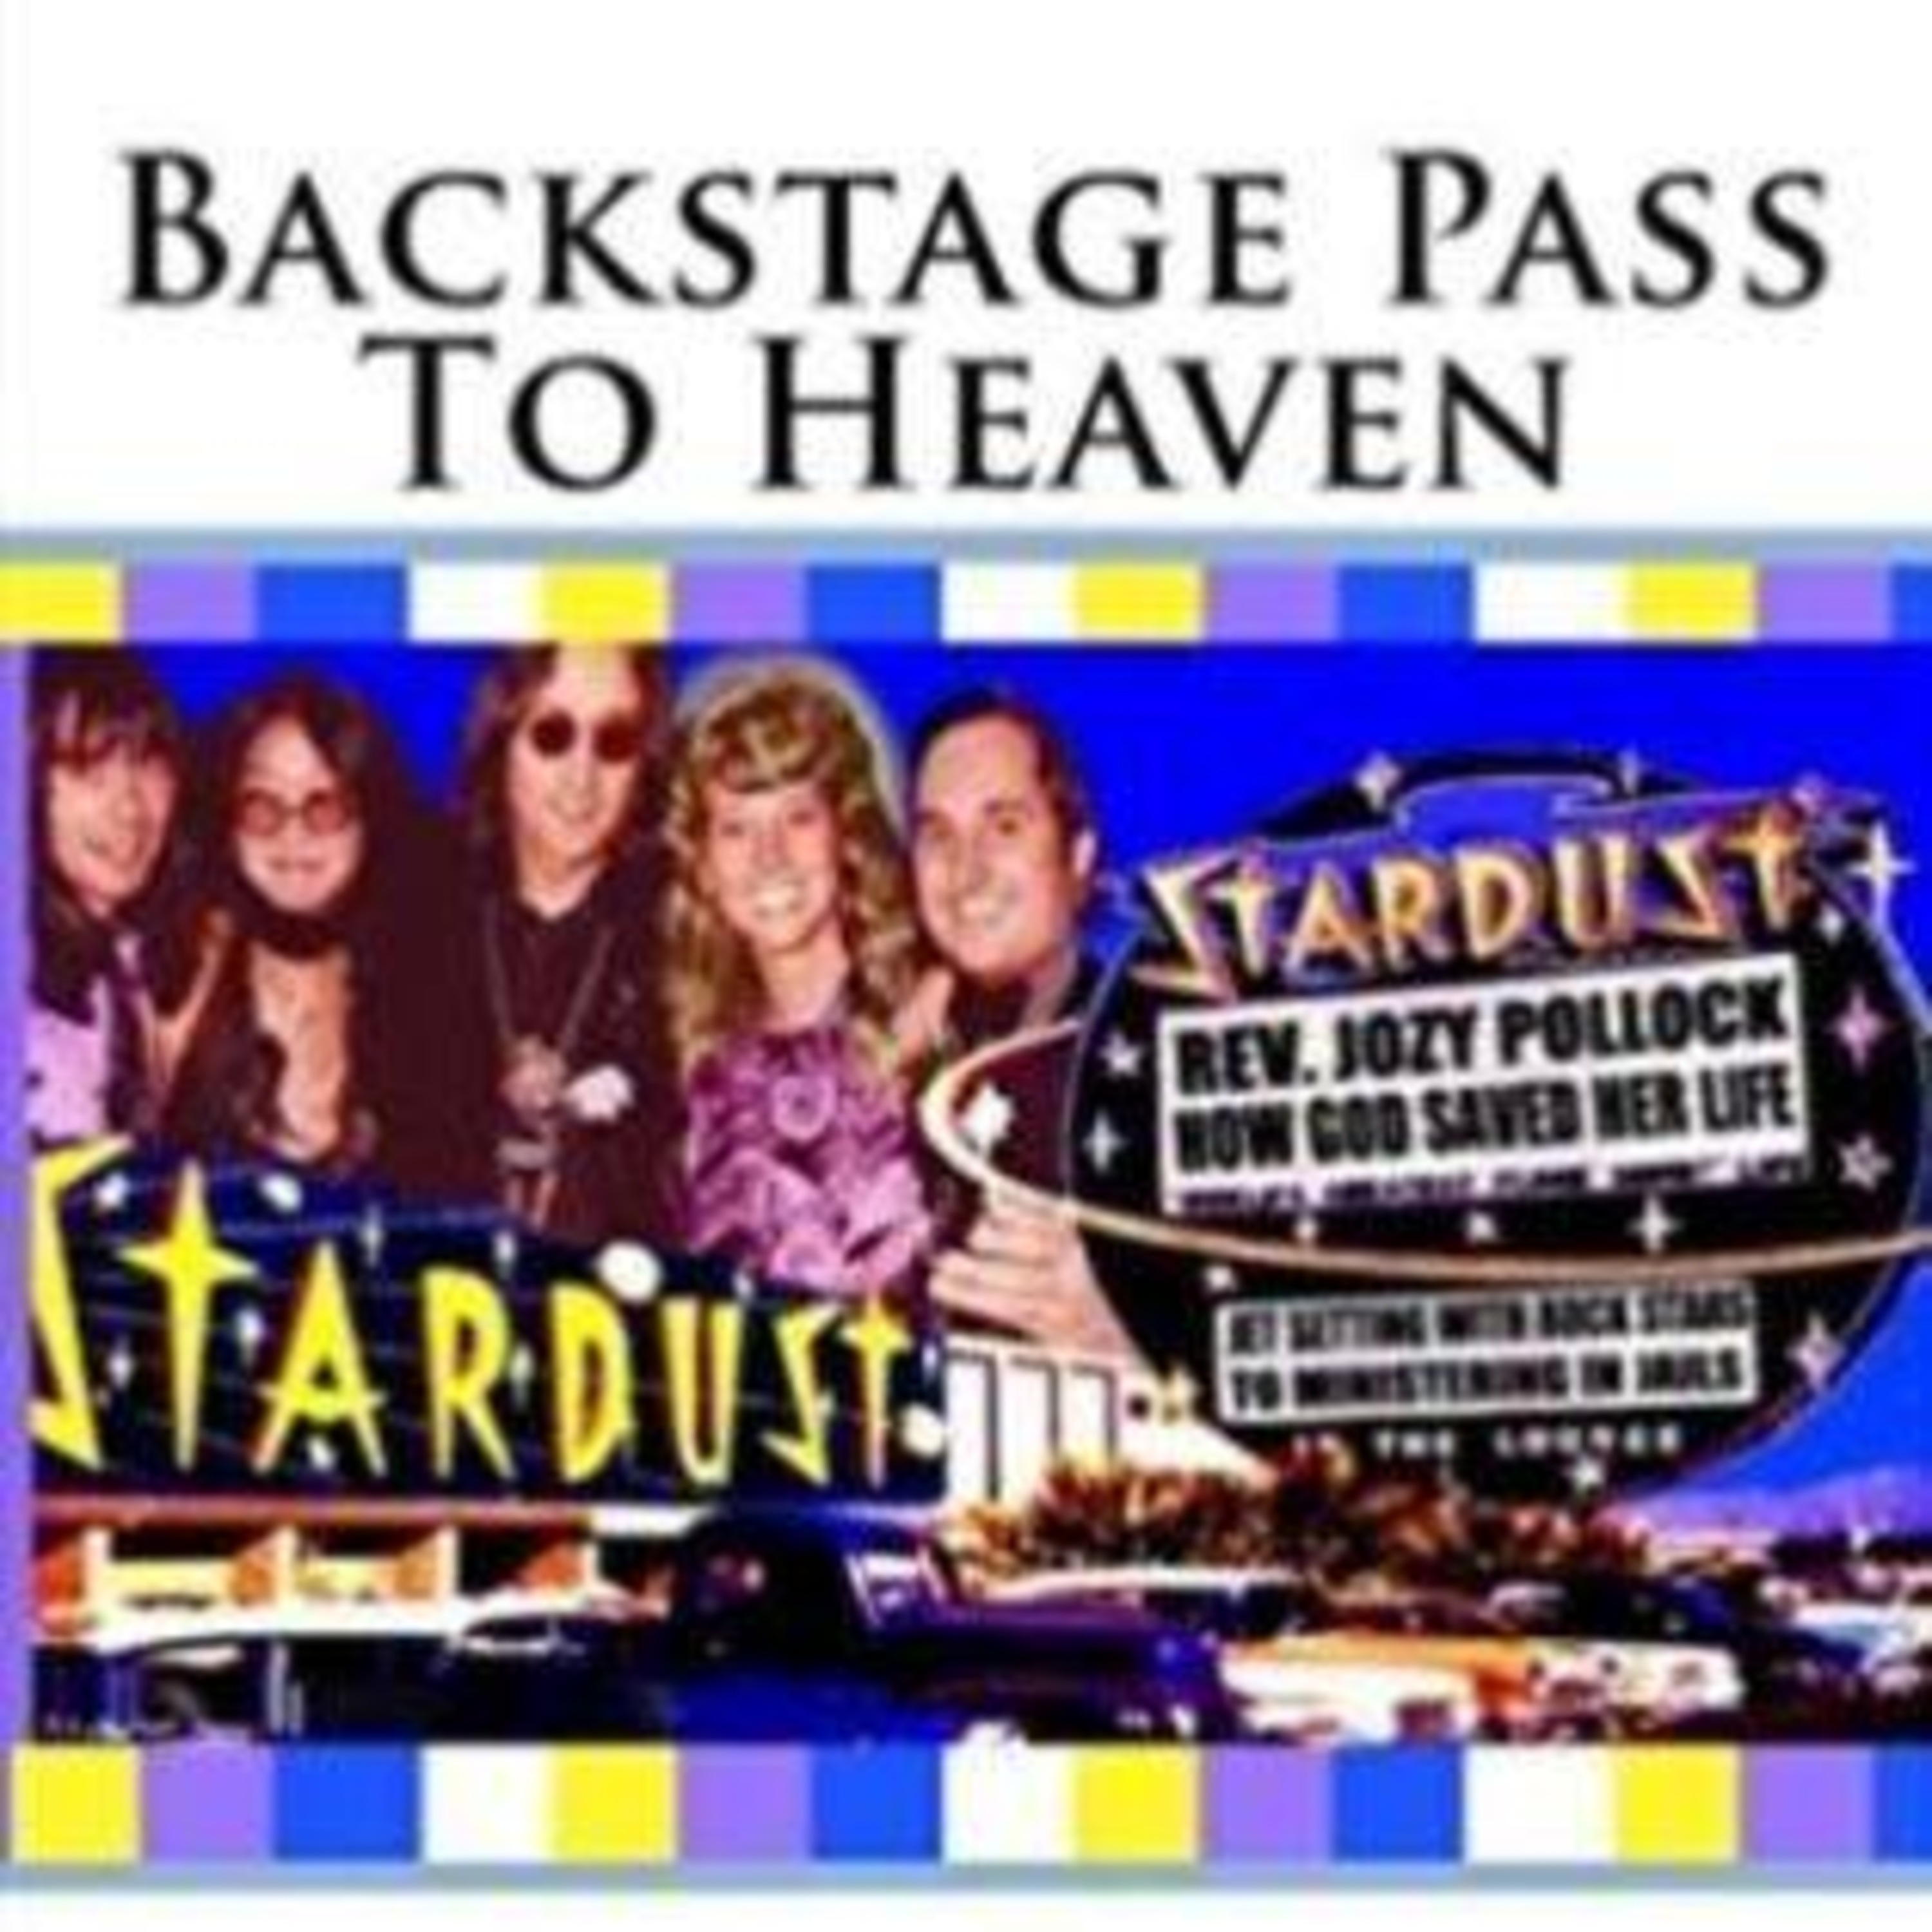 Jozy Pollock – A Backstage Pass to Heaven